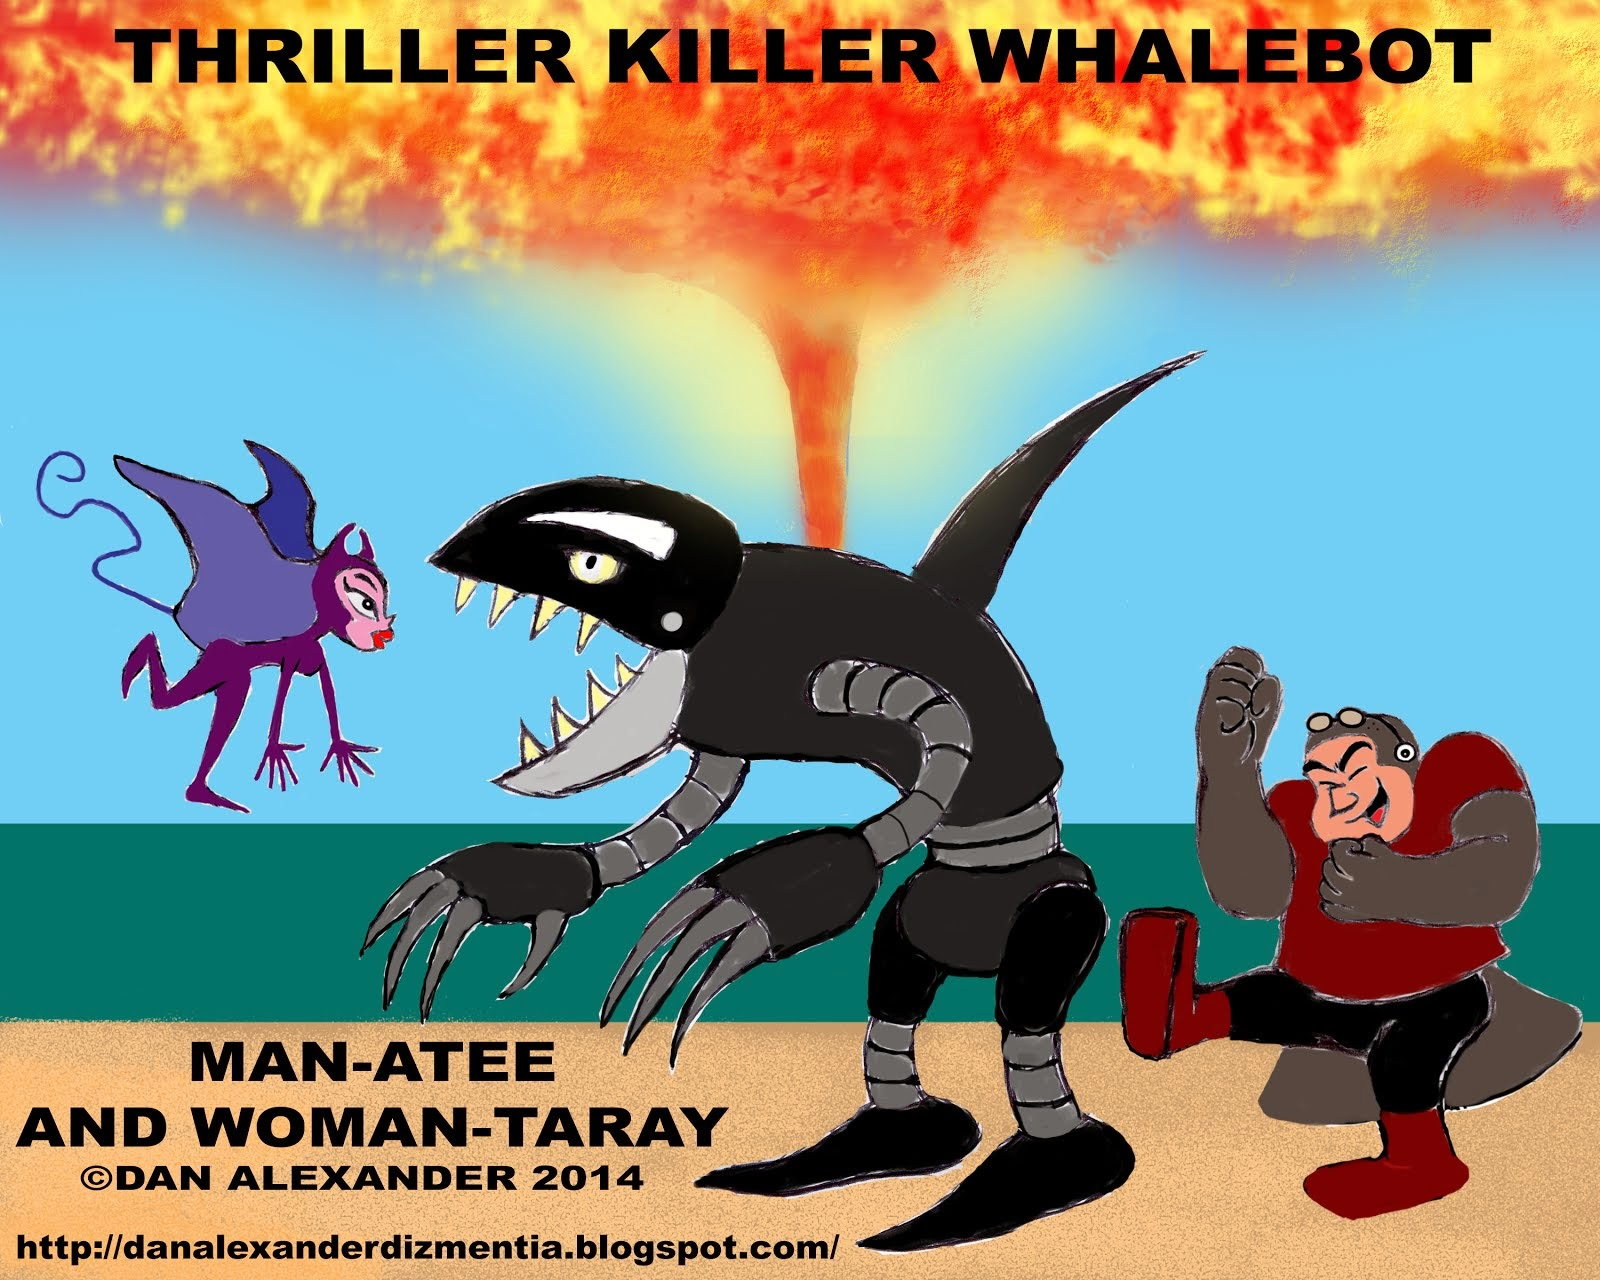 MAN-ATEE AND WOMAN-TARAY: UPSTART SUPERHEROES, OR DIABOLICAL VILLAINS?